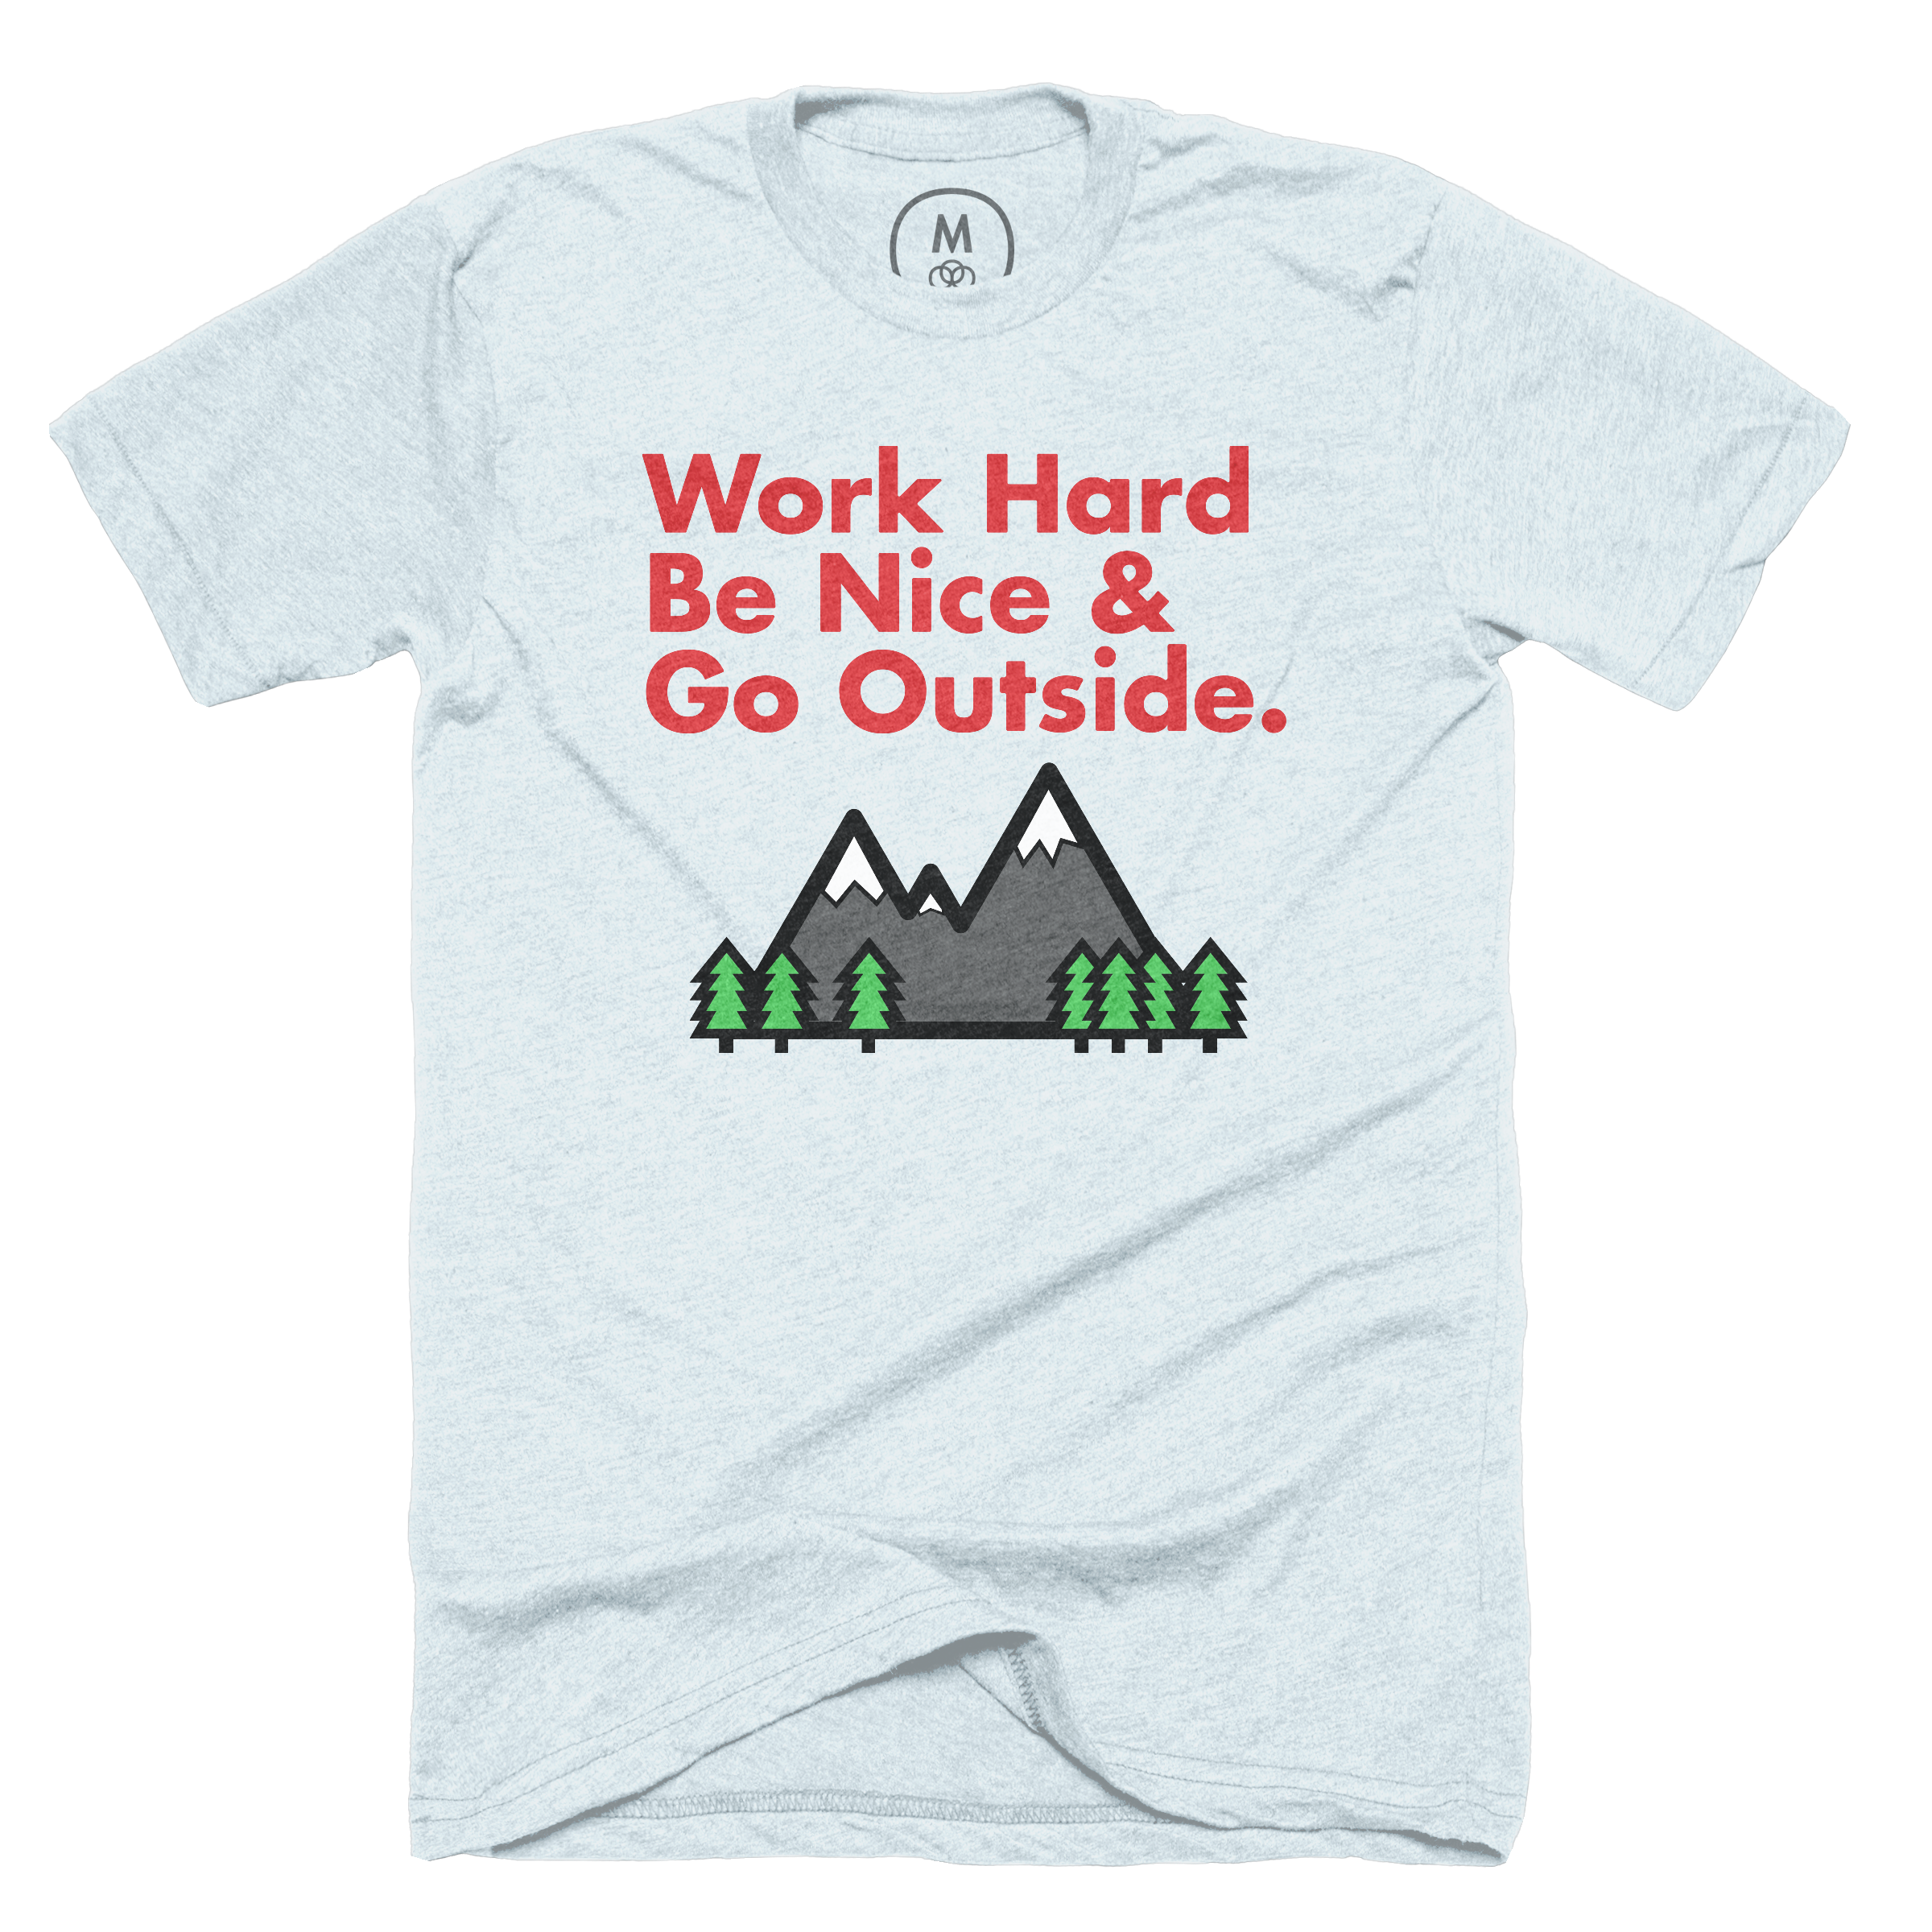 Work Hard, Be Nice & Go Outside